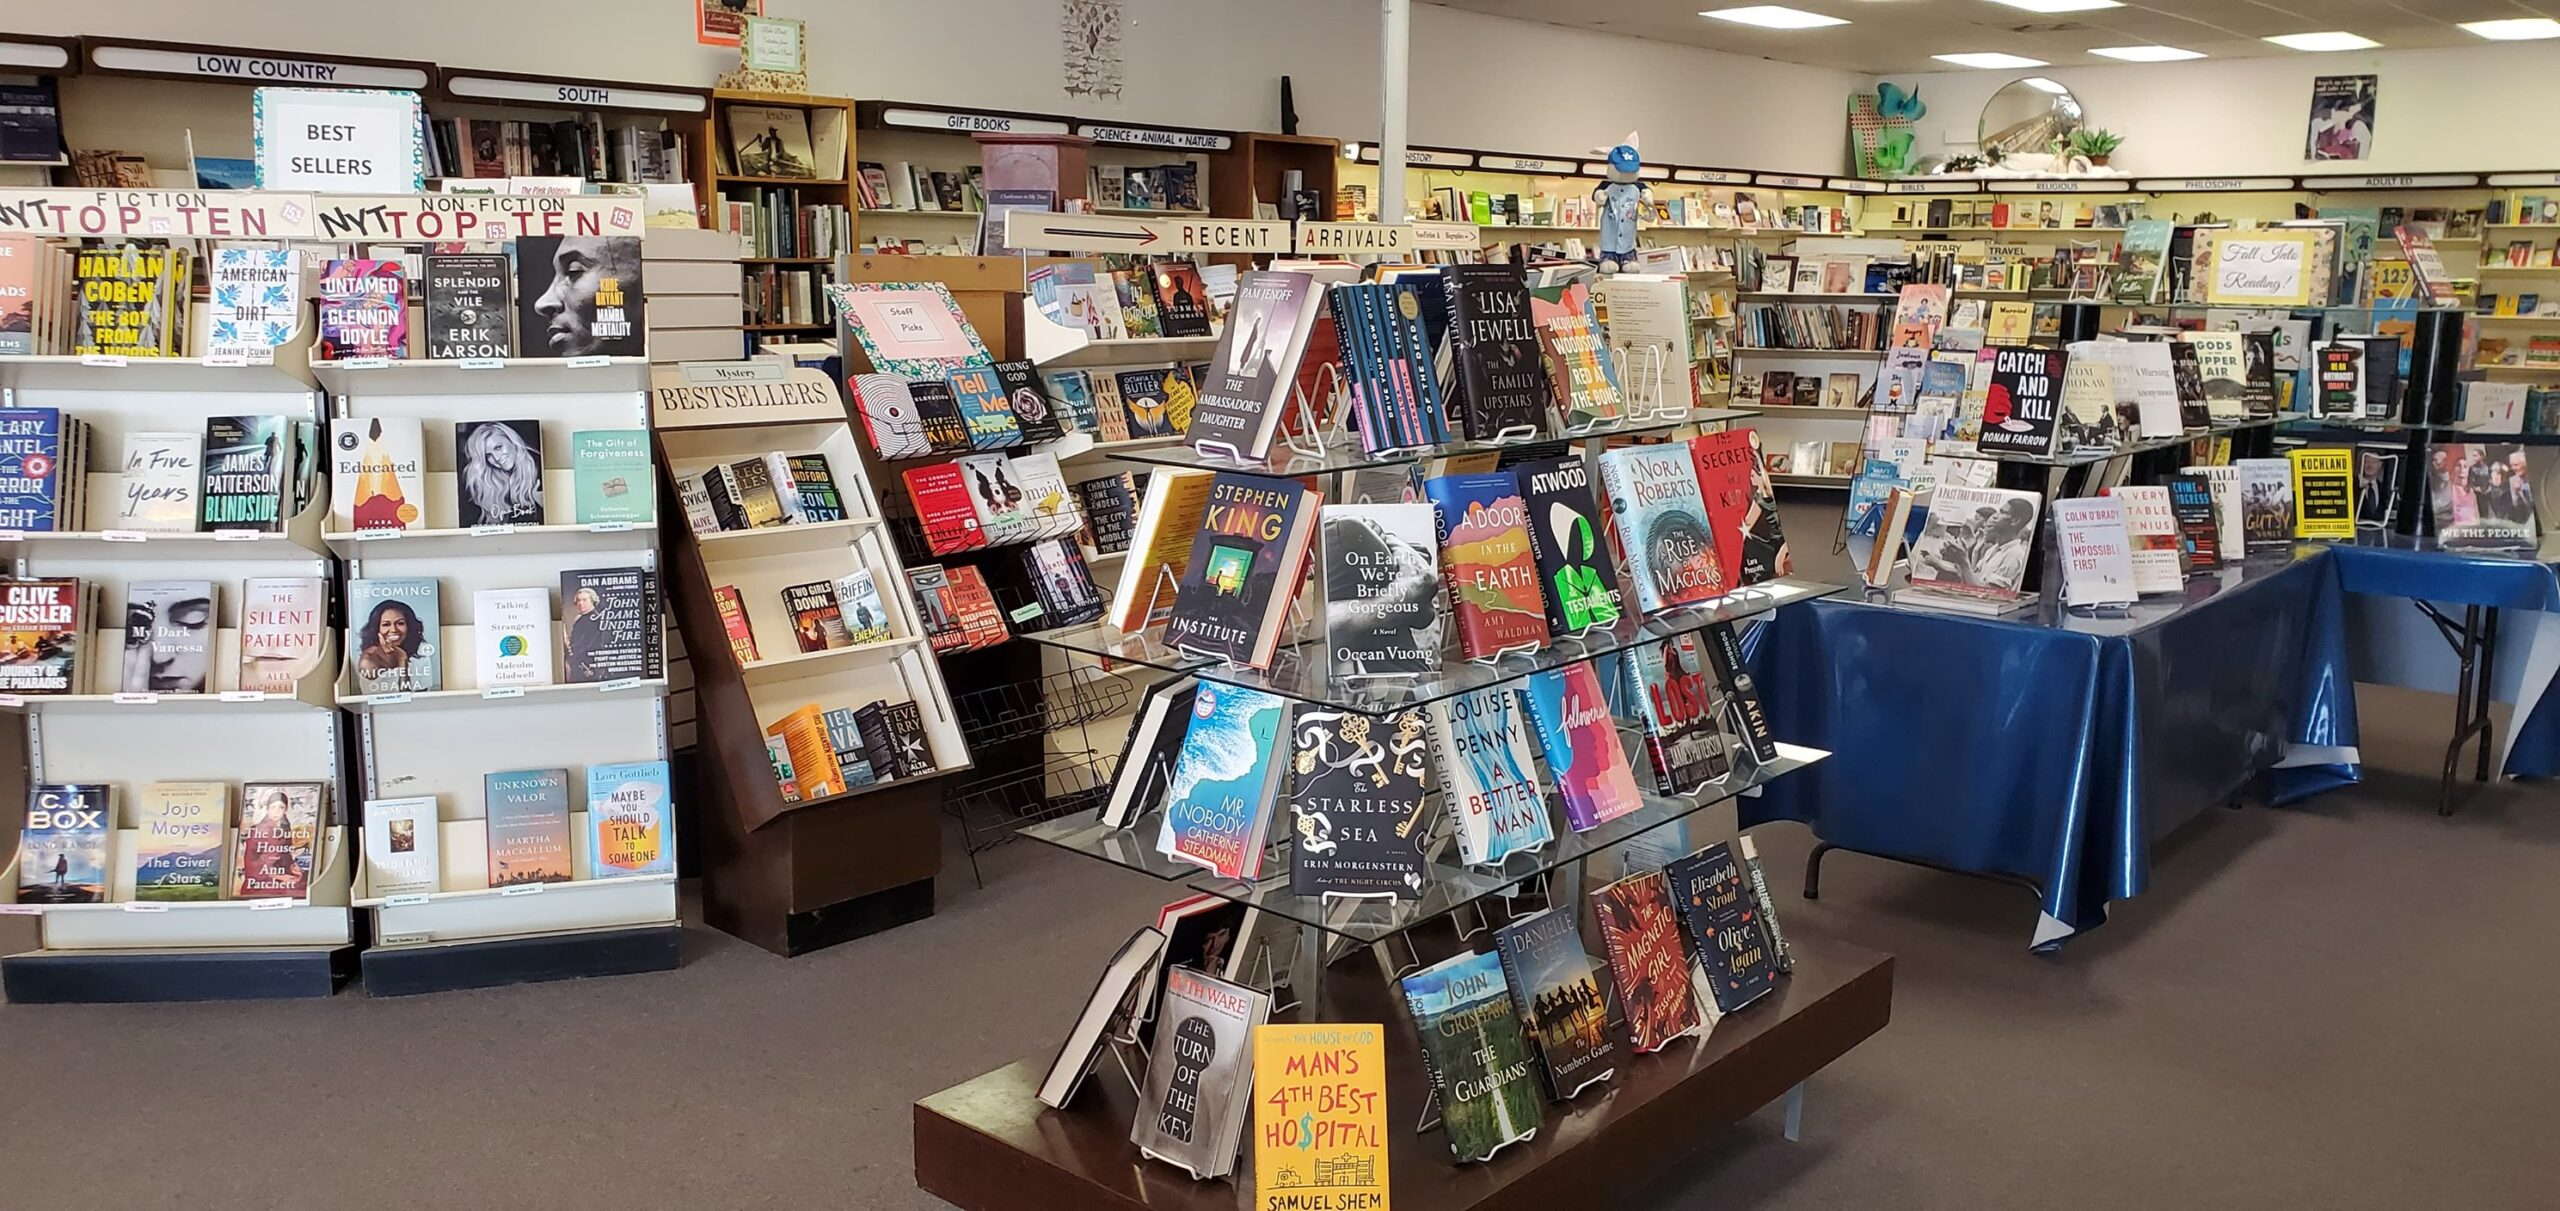 The Beaufort Bookstore